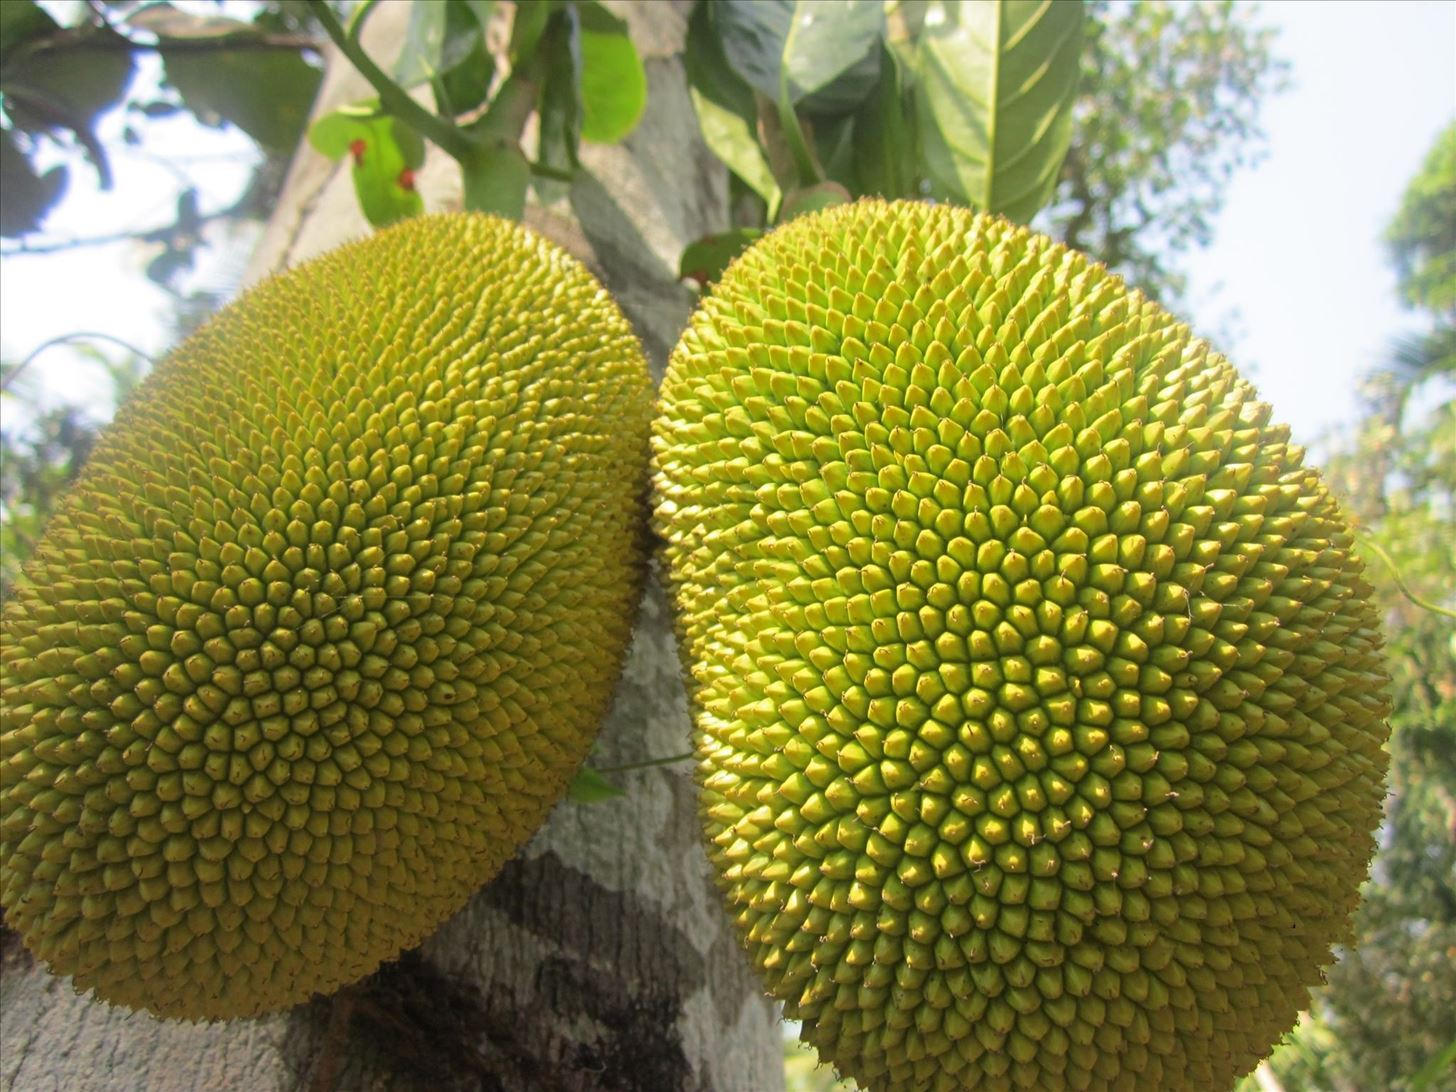 How to Cut a Jack Fruit